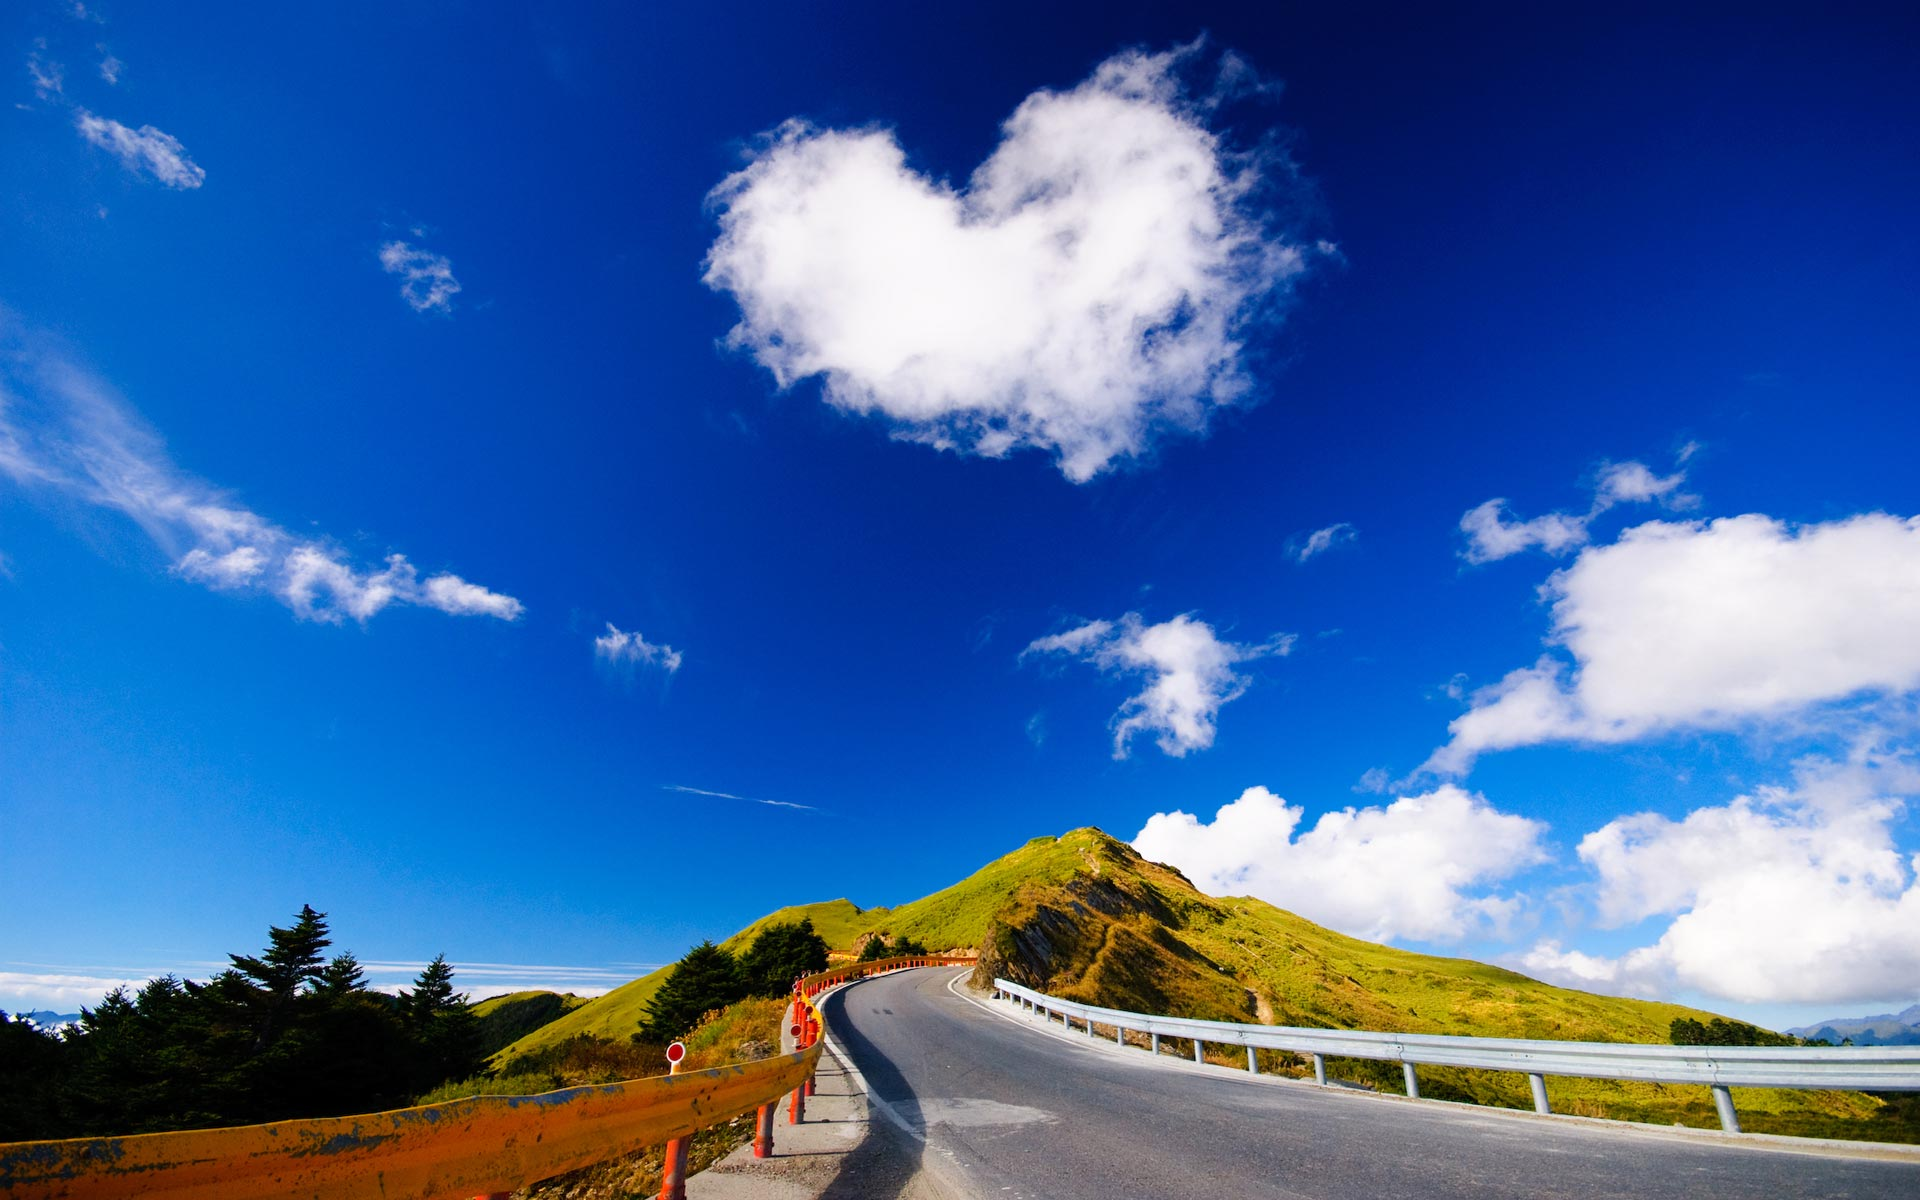 cloud wallpaper road heart